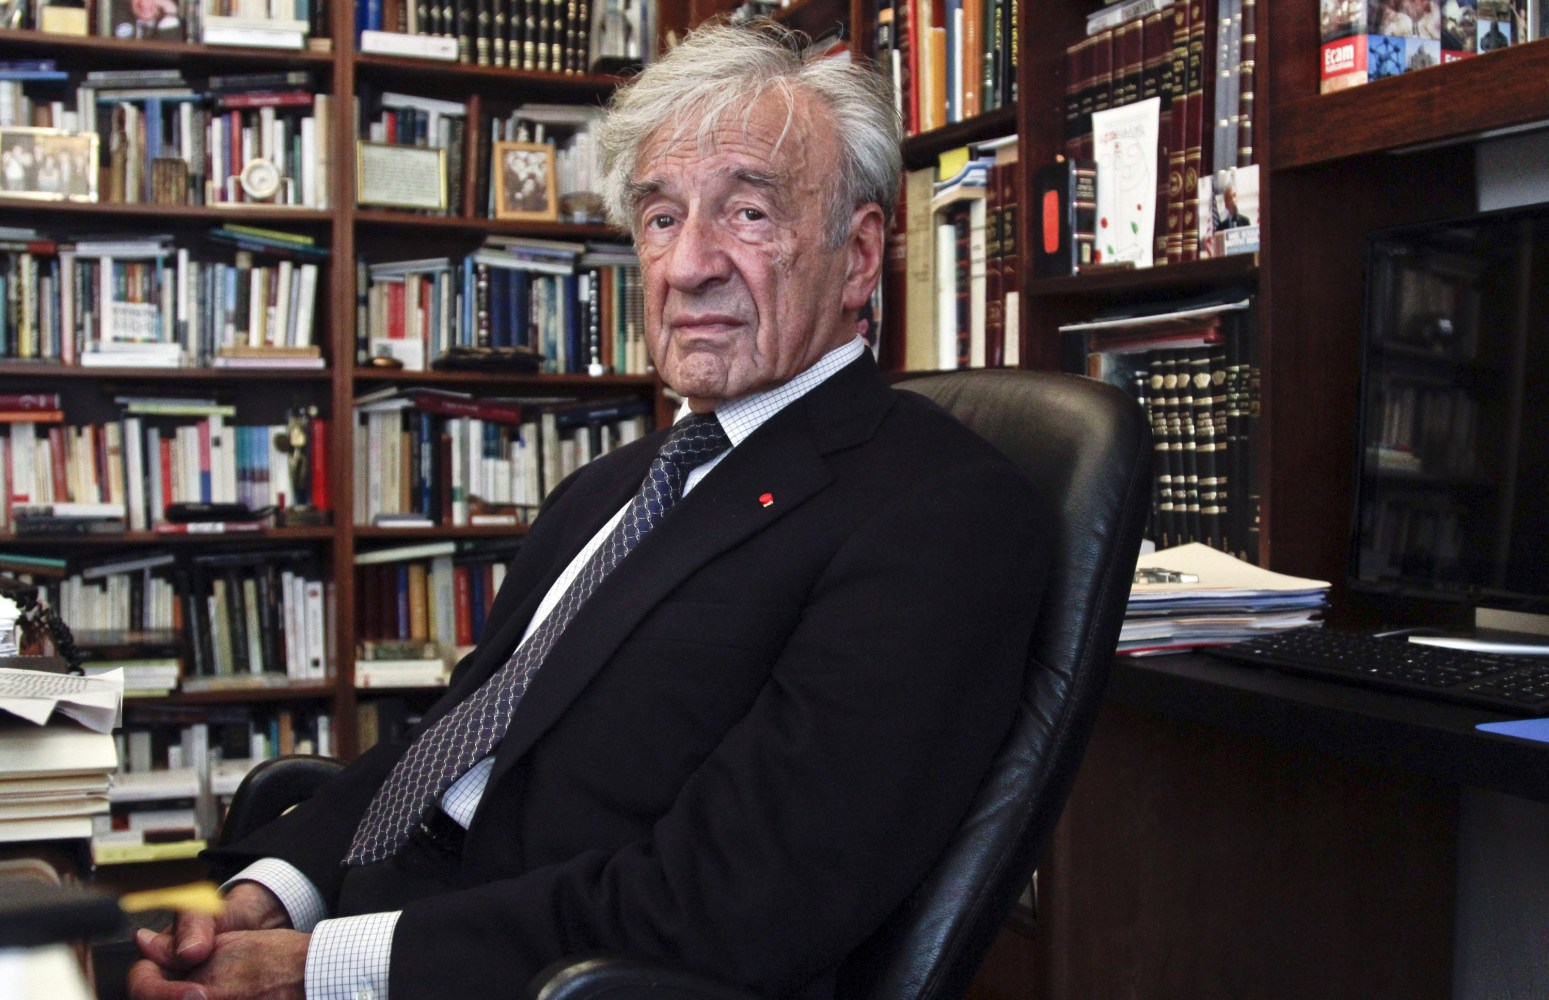 Elie Wiesel, Nobel Laureate, Holocaust Survivor and 'Night' Author ...